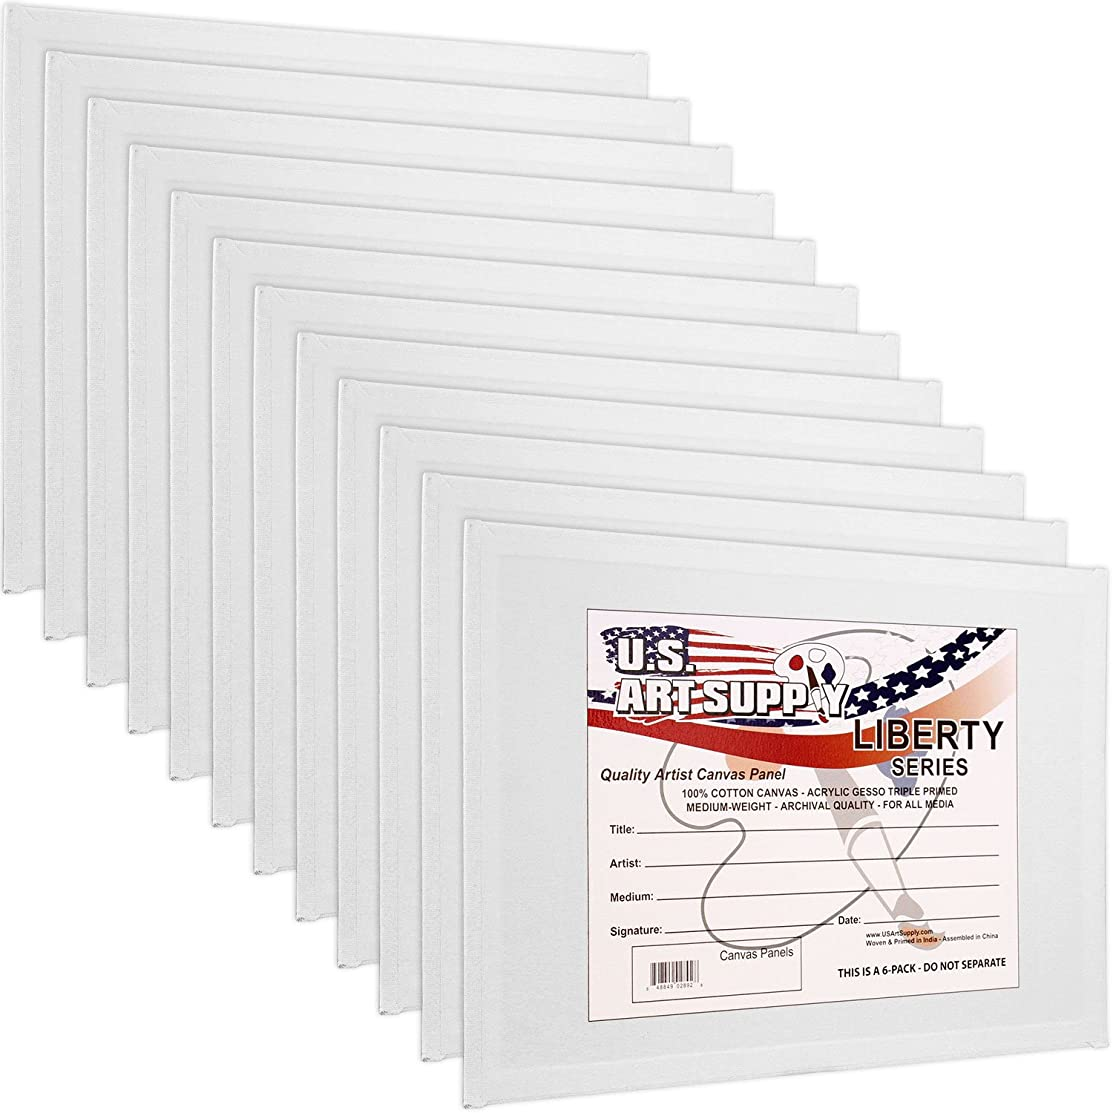 US Art Supply 16 X 20 inch Professional Artist Quality Acid Free Canvas Panel Boards for Painting 12-Pack (1 Full Case of 12 Single Canvas Board Panels)